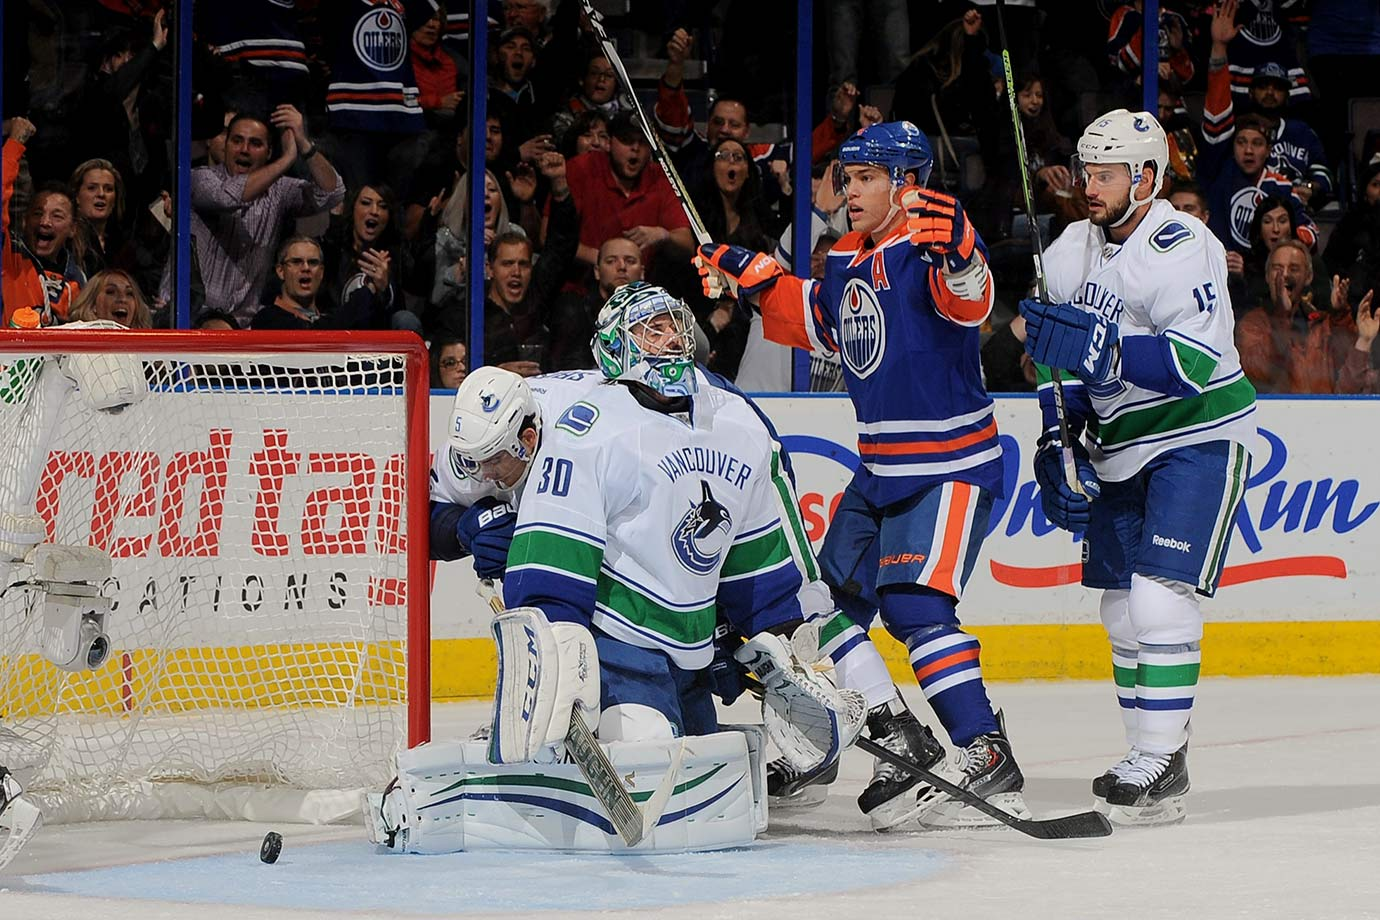 Ryan Miller is like the singer who can't quite hit the high notes anymore. He still reaches but he can't quite get them. Sort of like the pucks that keep finding the open corners of his net. Miller's career is in sharp decline, and backup Jacob Markstrom doesn't offer much in the way of insurance. Tough to win when you can't get a stop.